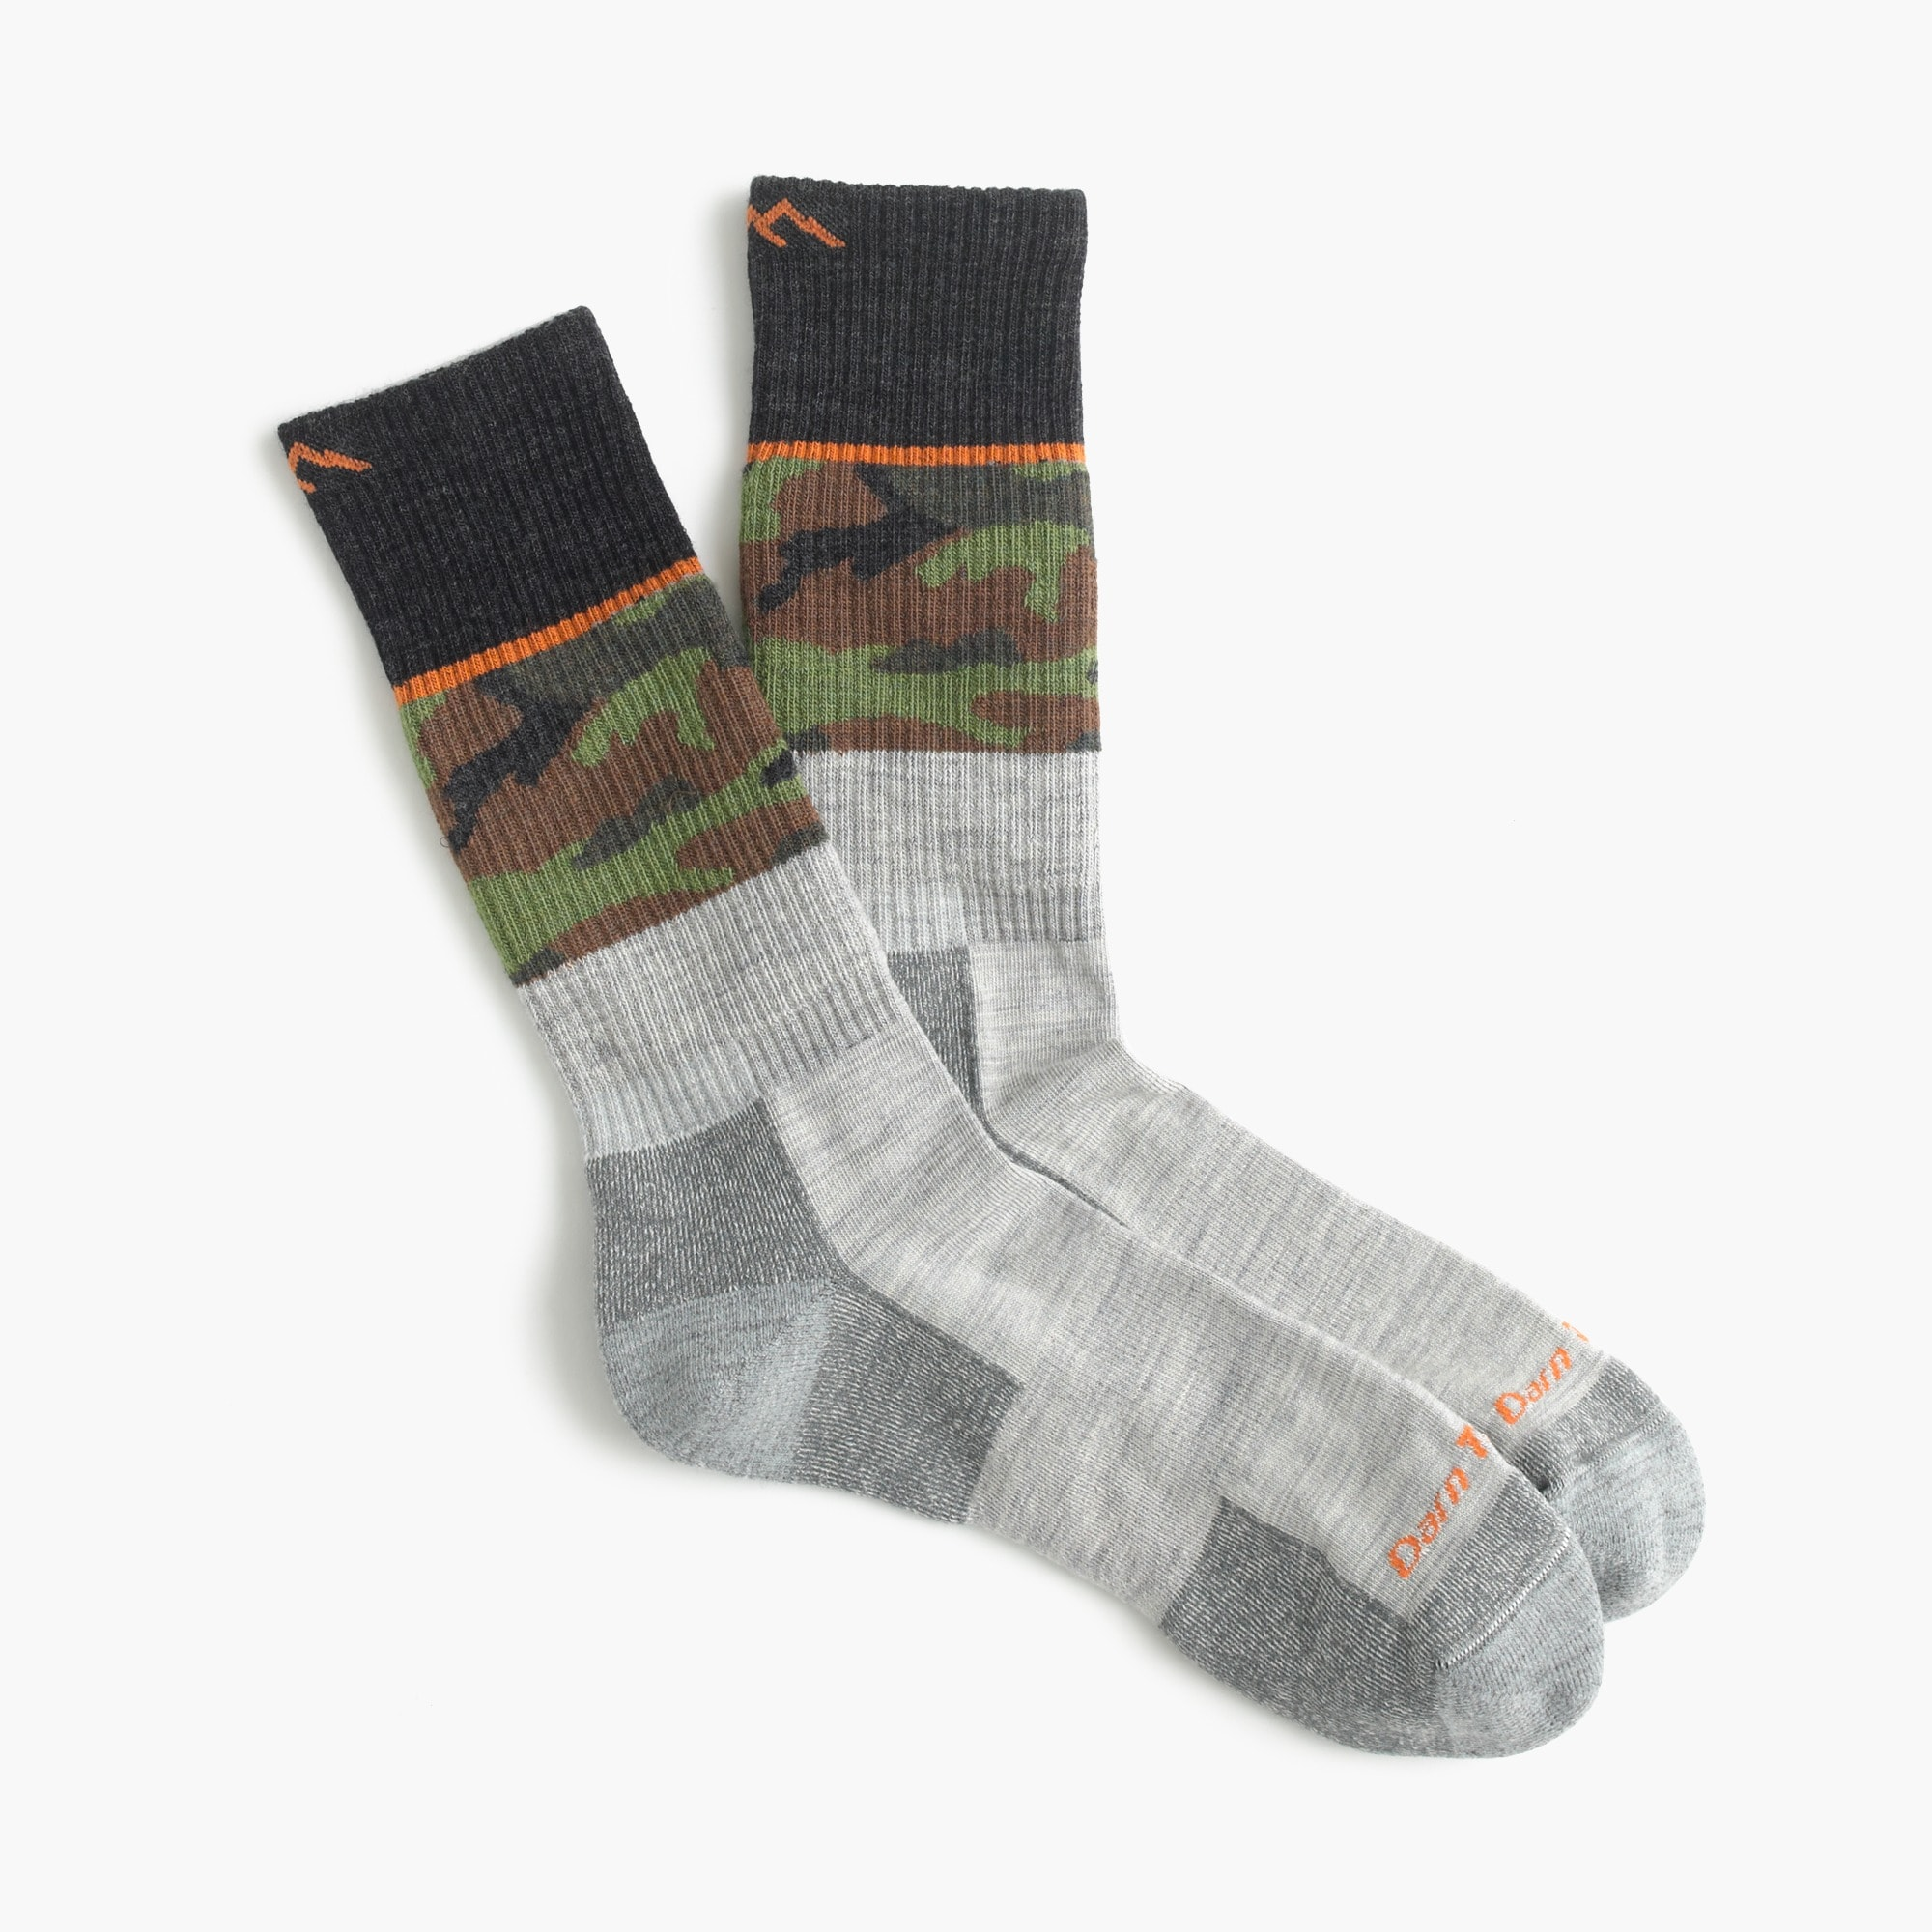 Darn Tough Vermont® for J.Crew striped camo socks men j.crew in good company c